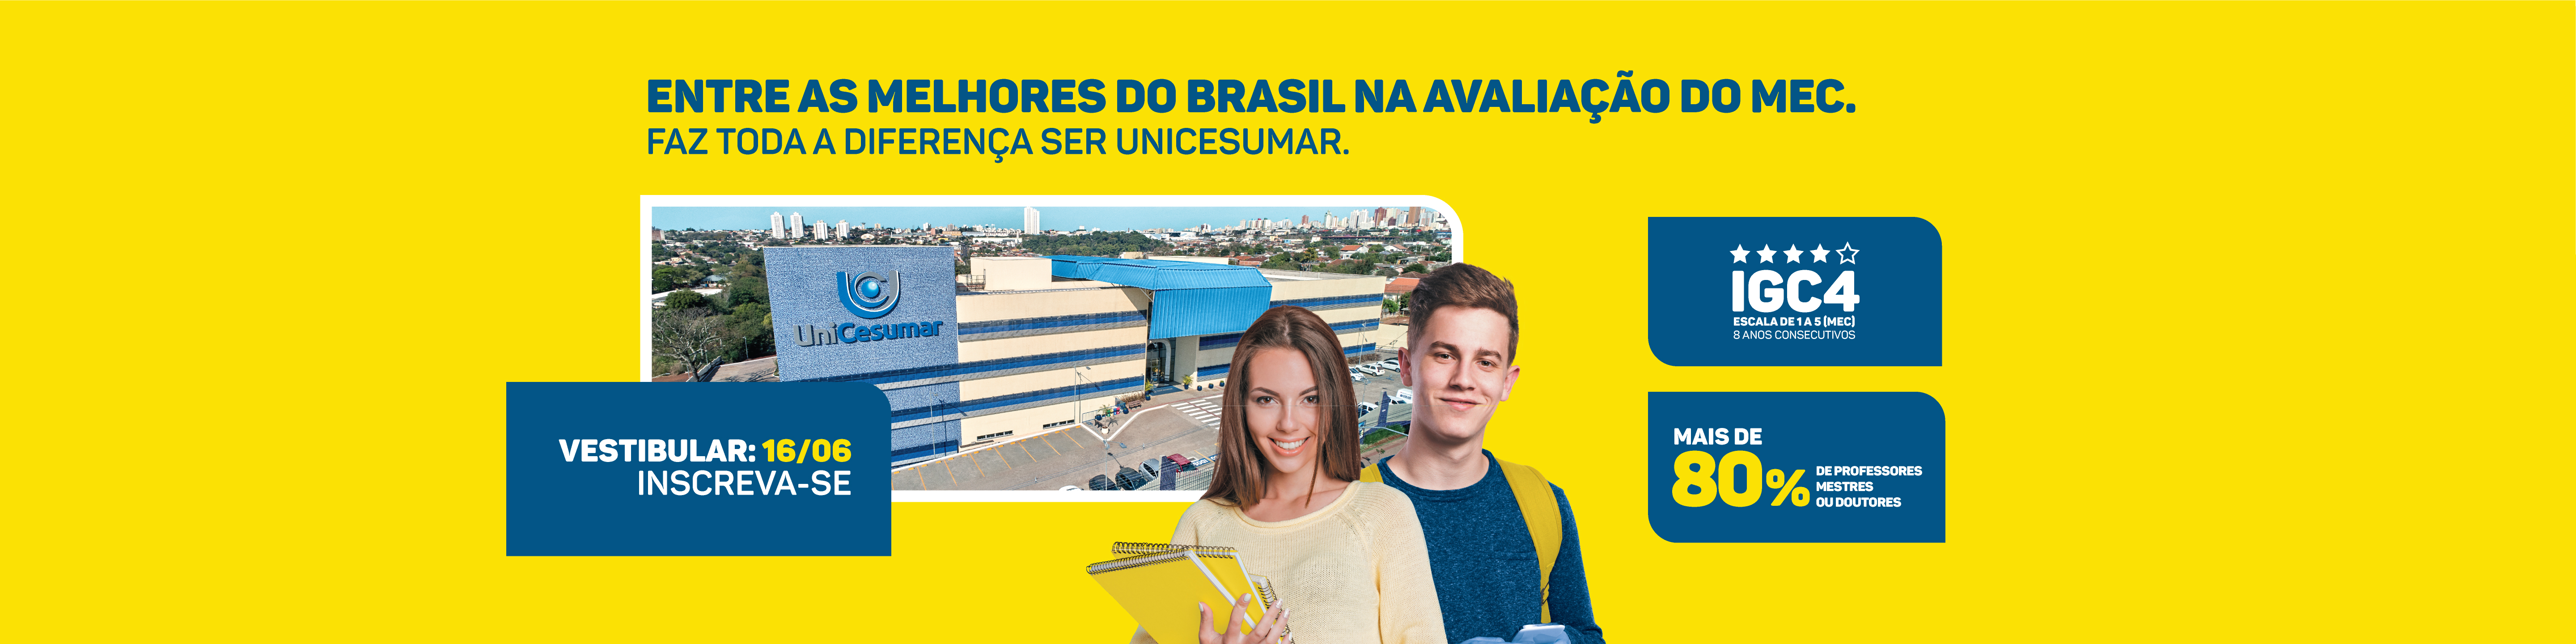 Banners-Site_home-1920x480pxl_londrina